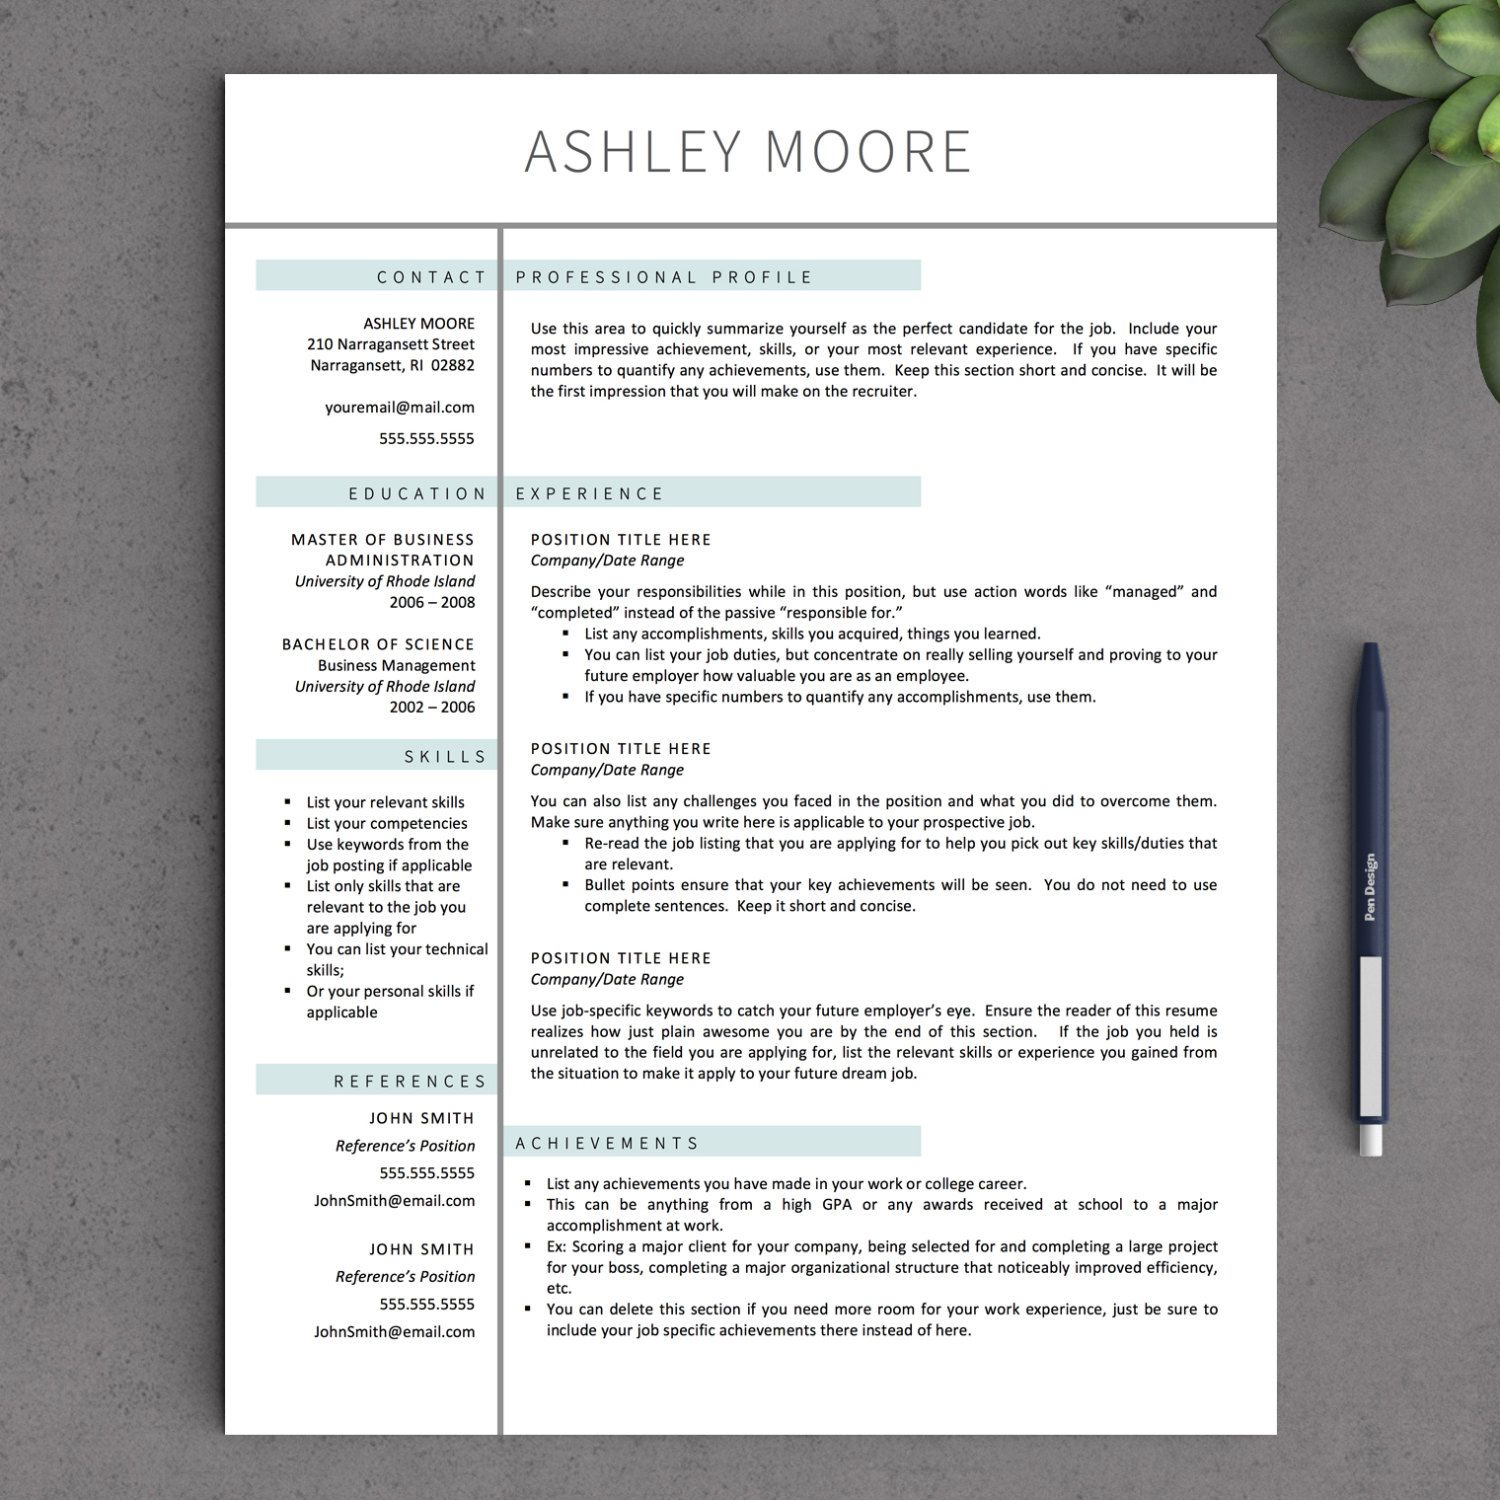 apple pages resume template download apple pages resume template download apple - Resume Templates Pages